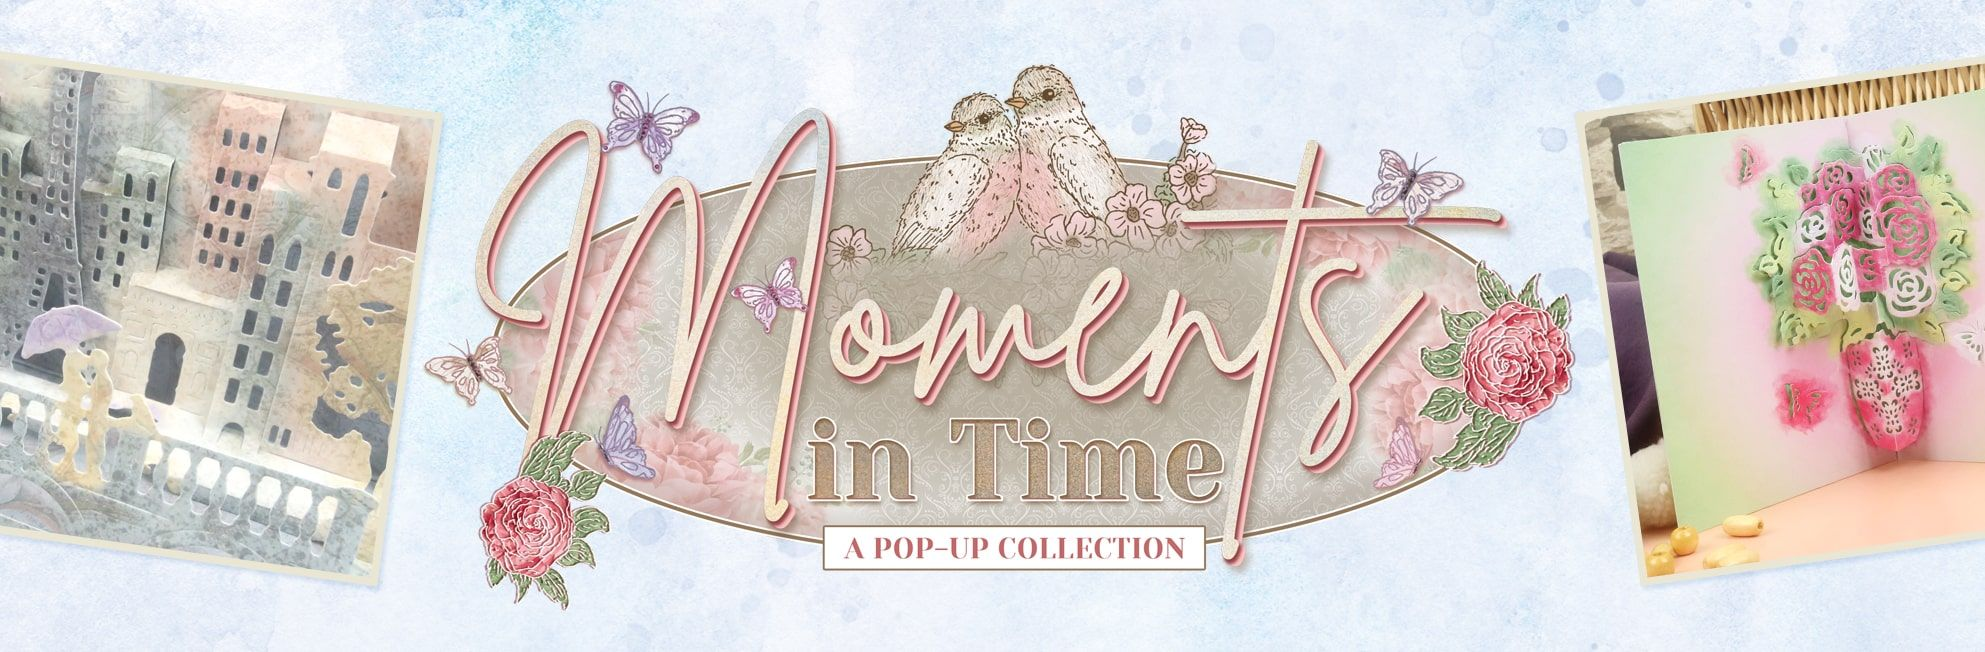 Moments in Time Pop-up Collection